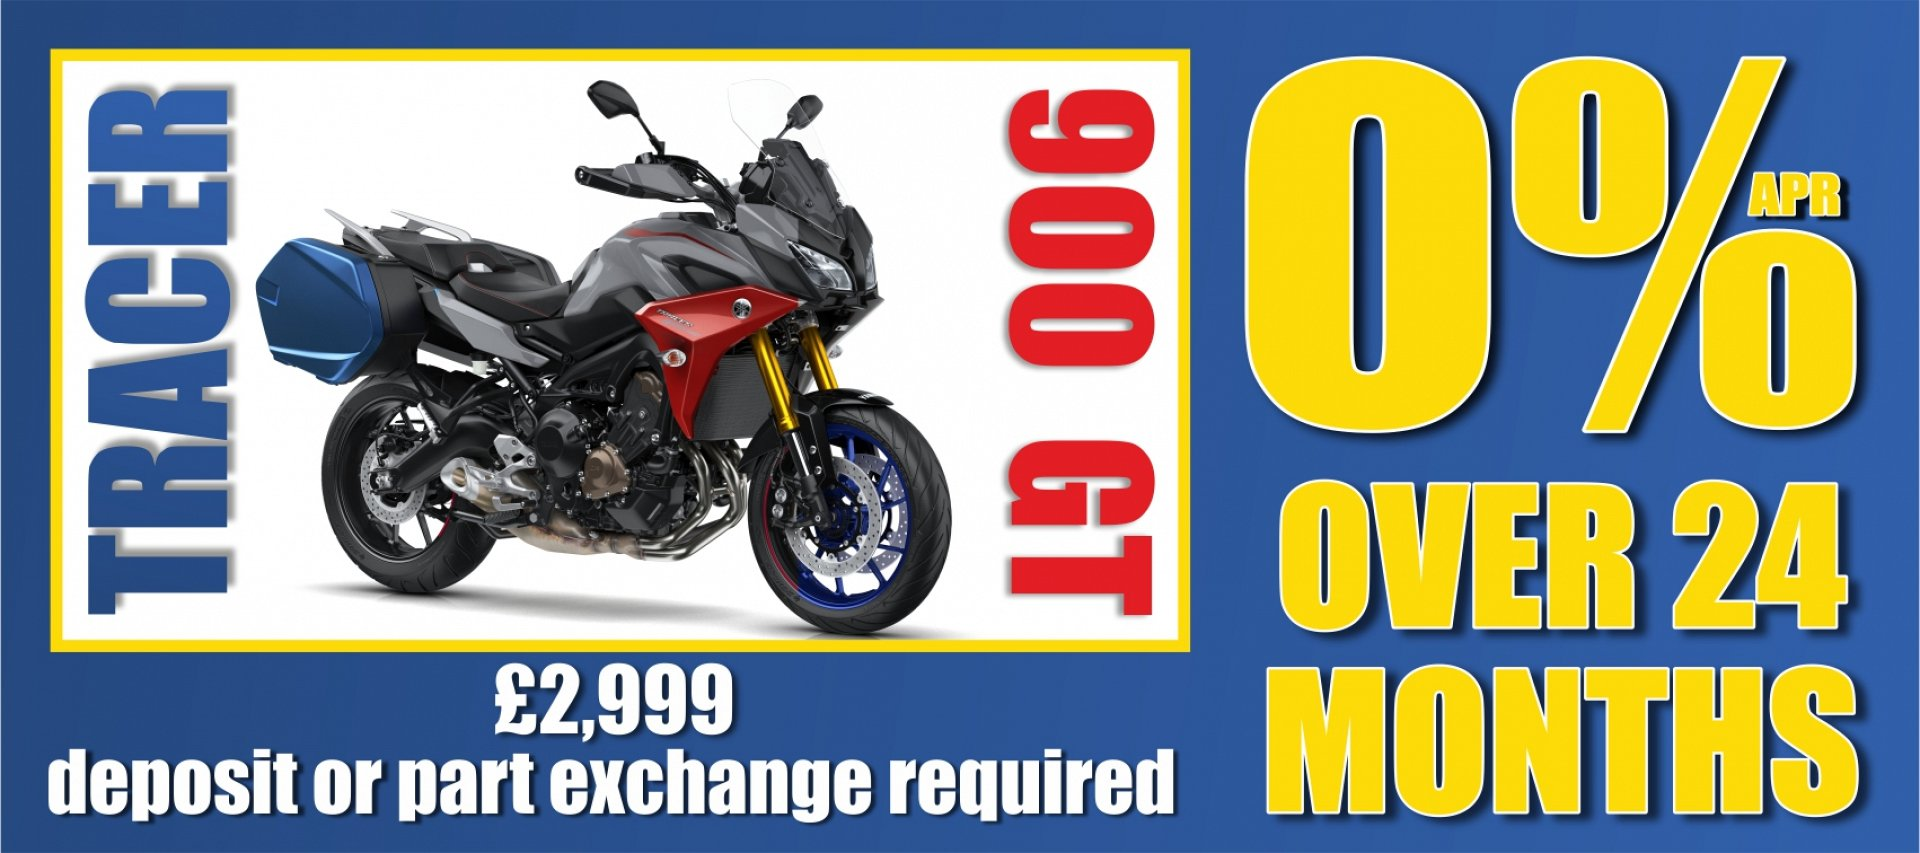 Grab the Yamaha Tracer 900 GT on 0% APR finance over 24 months.